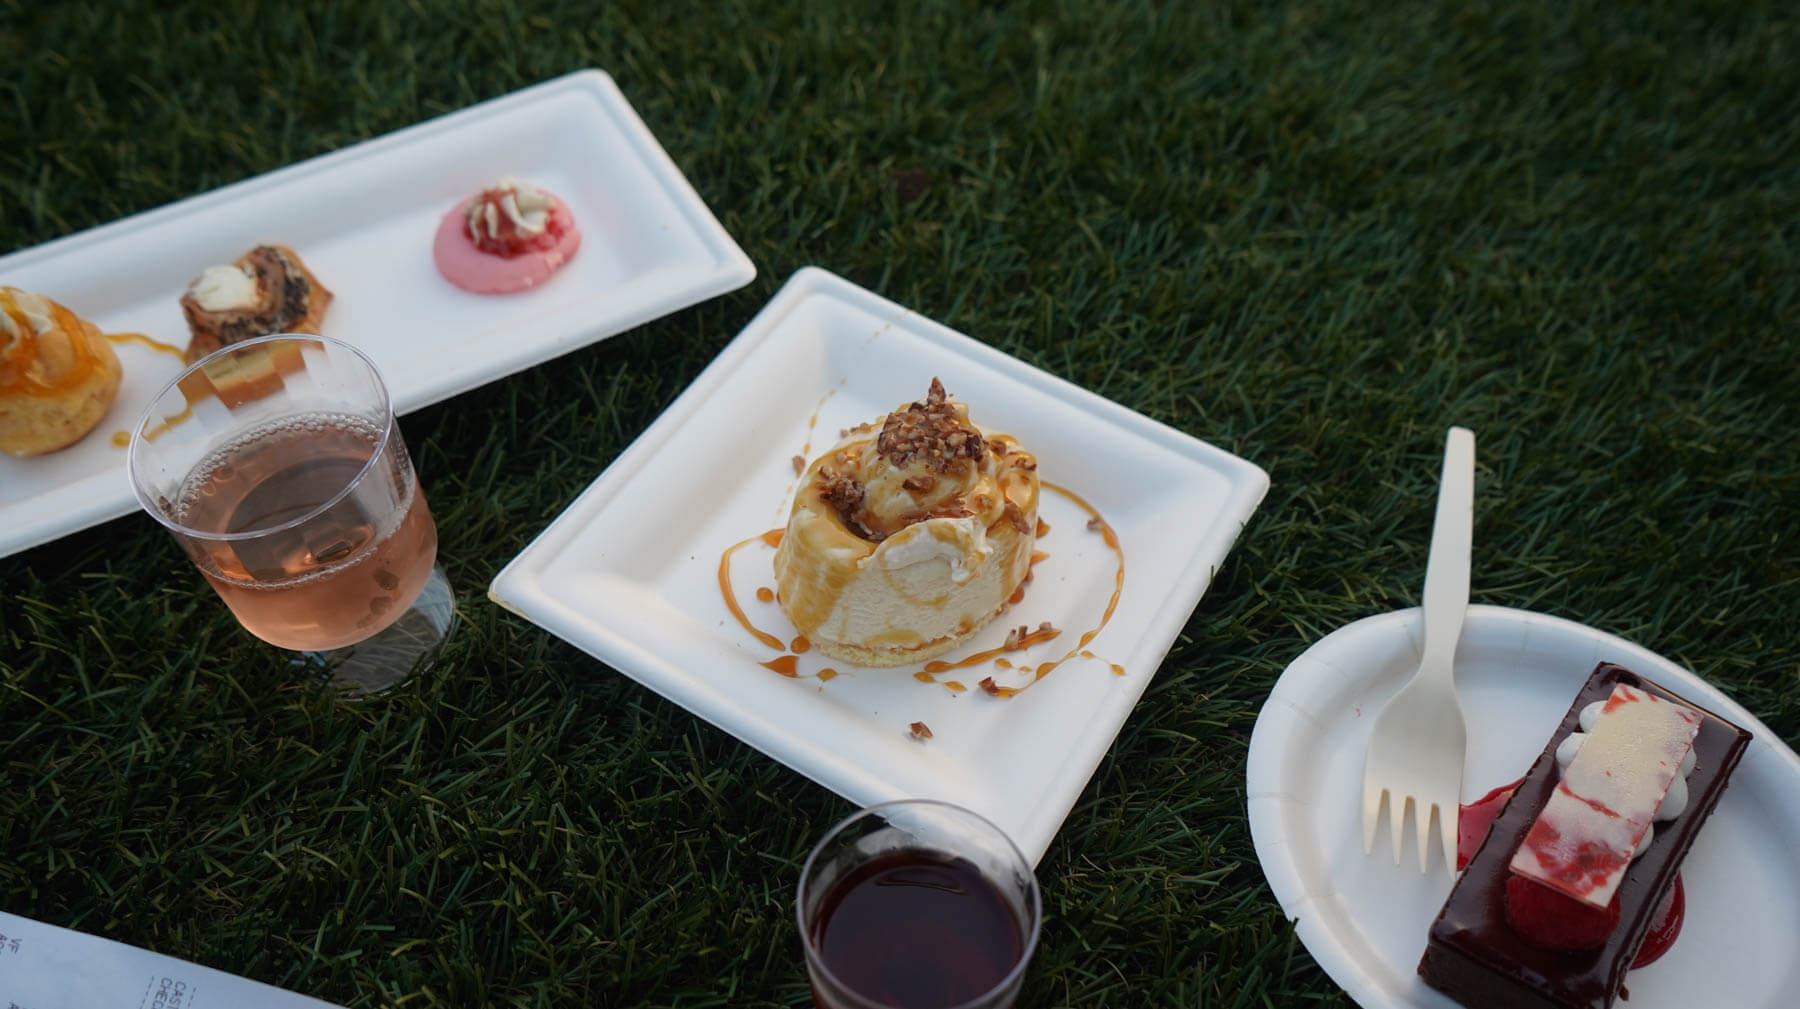 Chocolate Tart, Bourbon Maple Cheesecake, and Cheese Trio from Epcot's Food & Wine Festival 2018